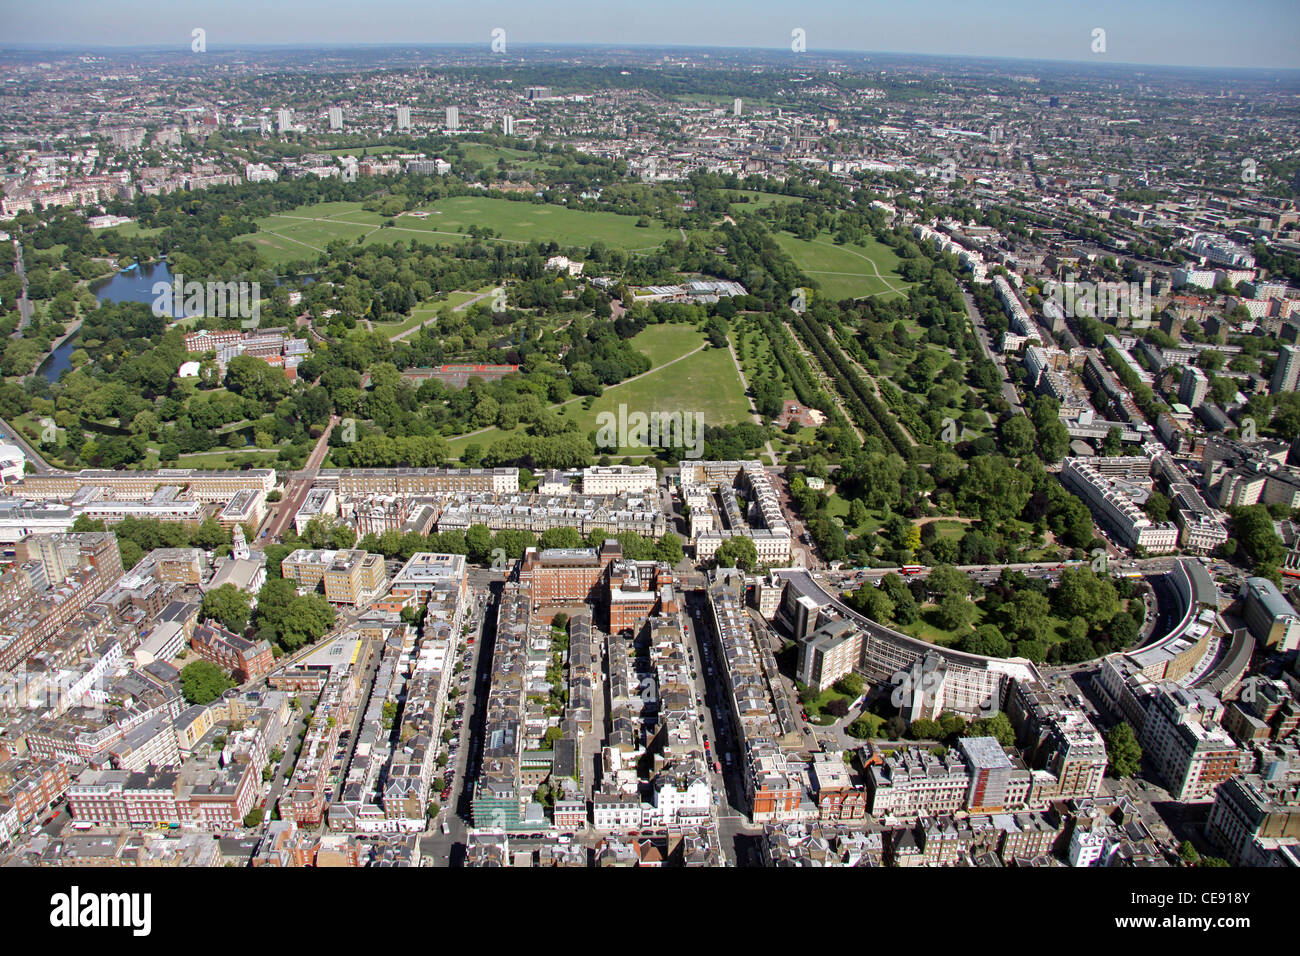 Aerial image of Regents Park, London NW1 Stock Photo